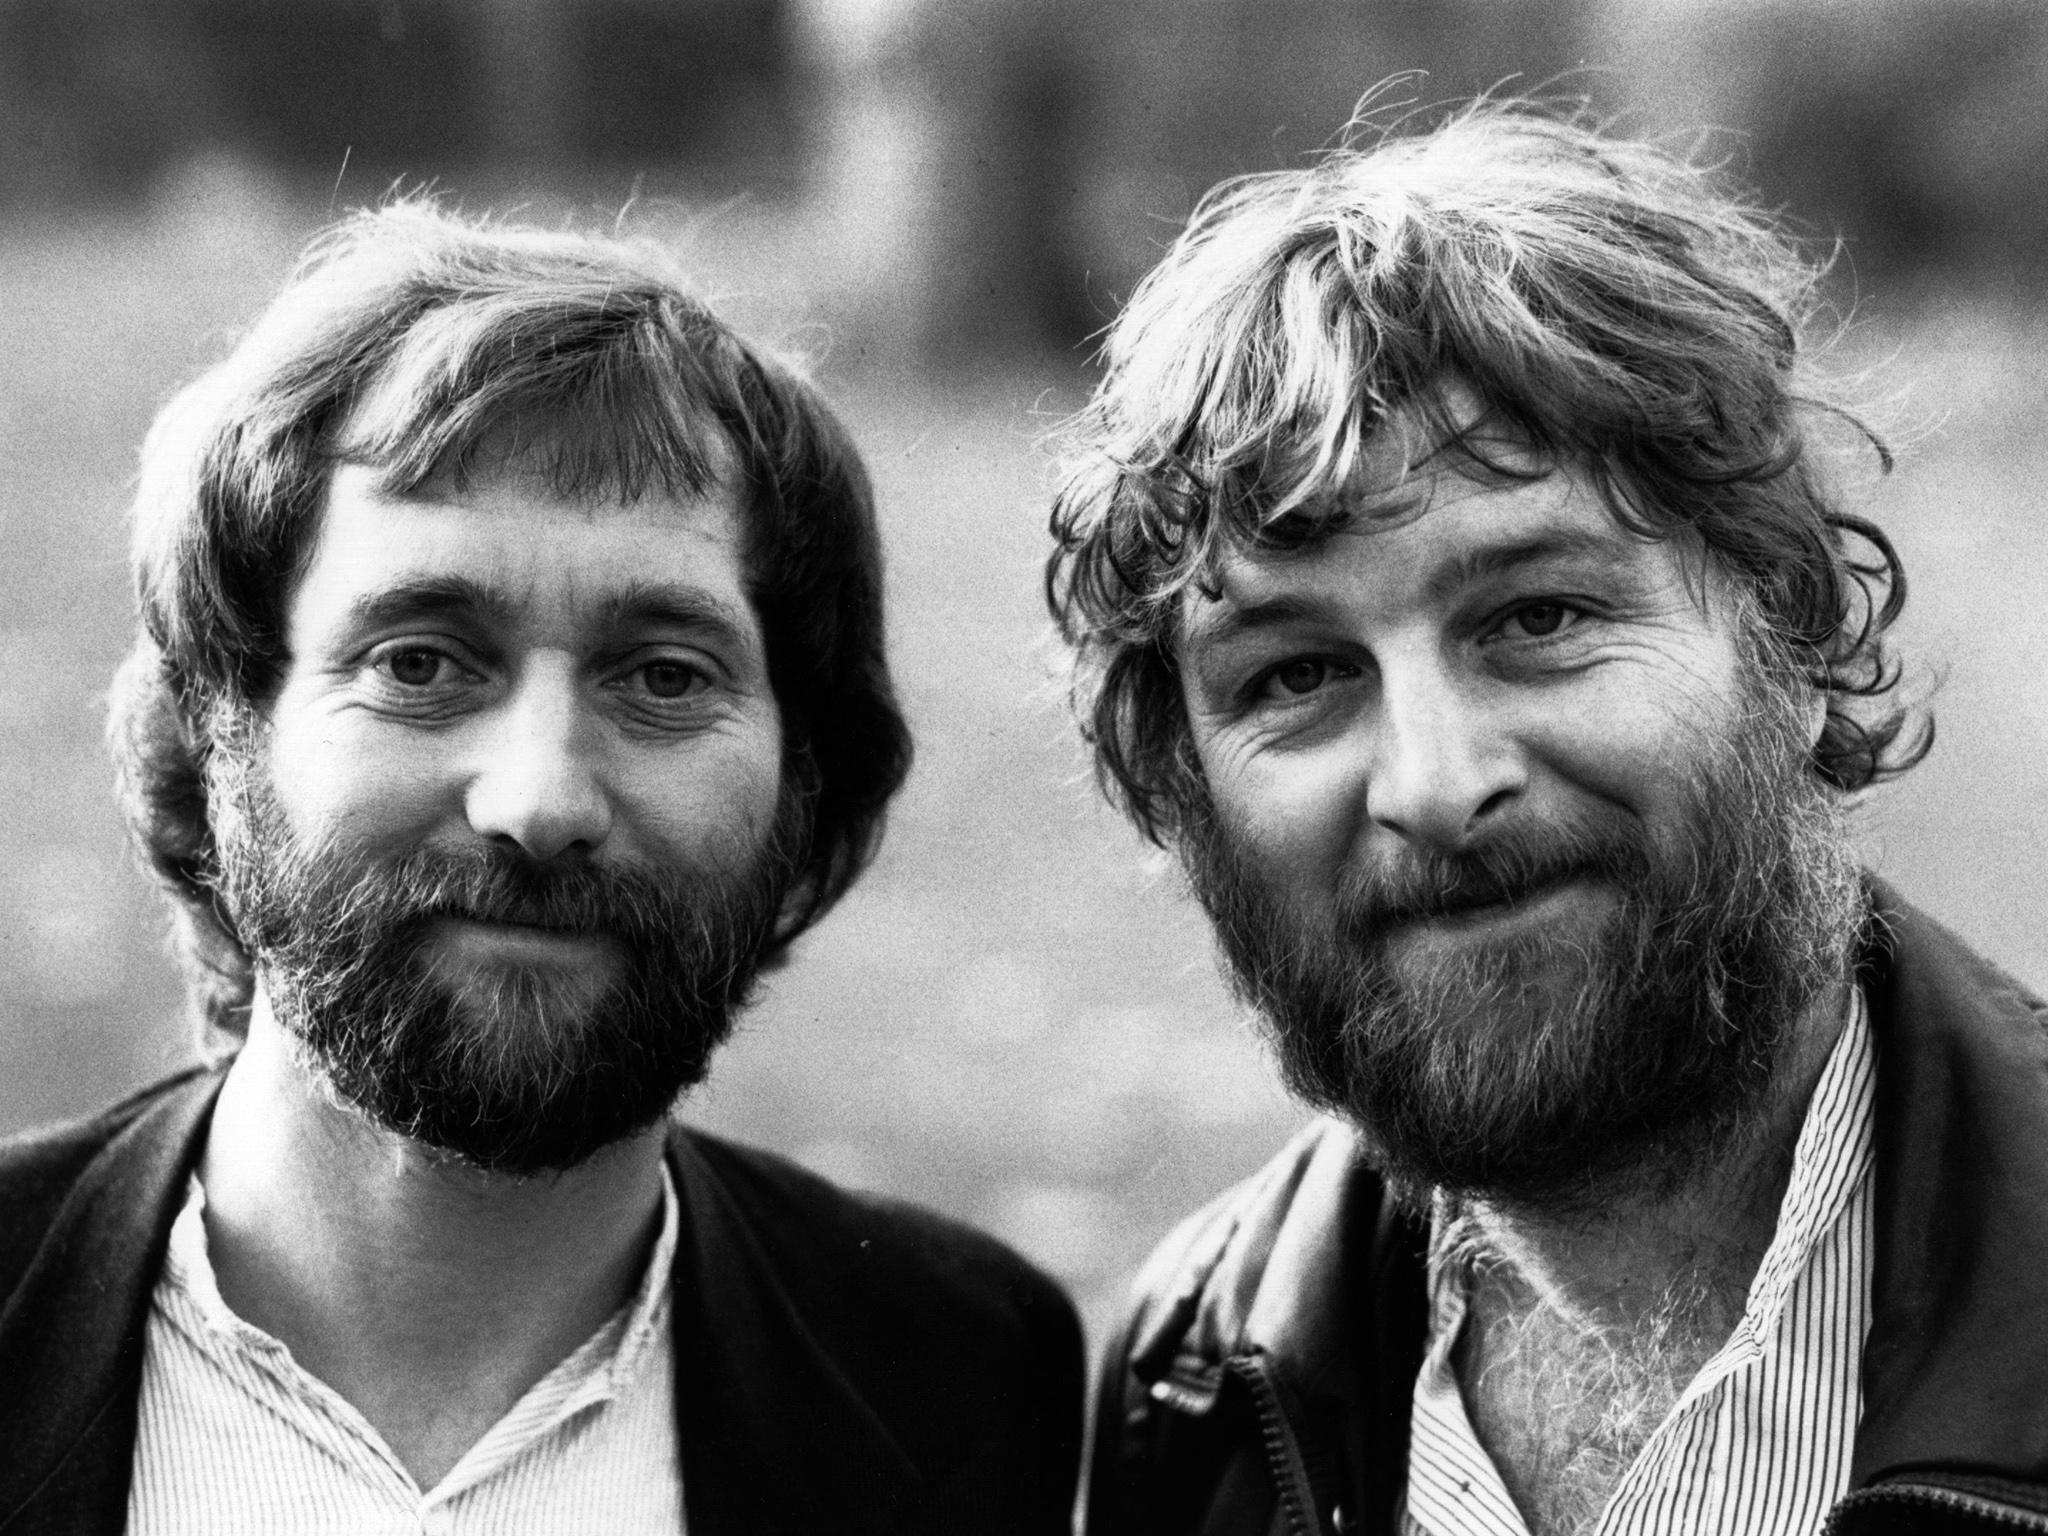 Chas Hodges: Much-loved singer who put cockney charm on the musical map